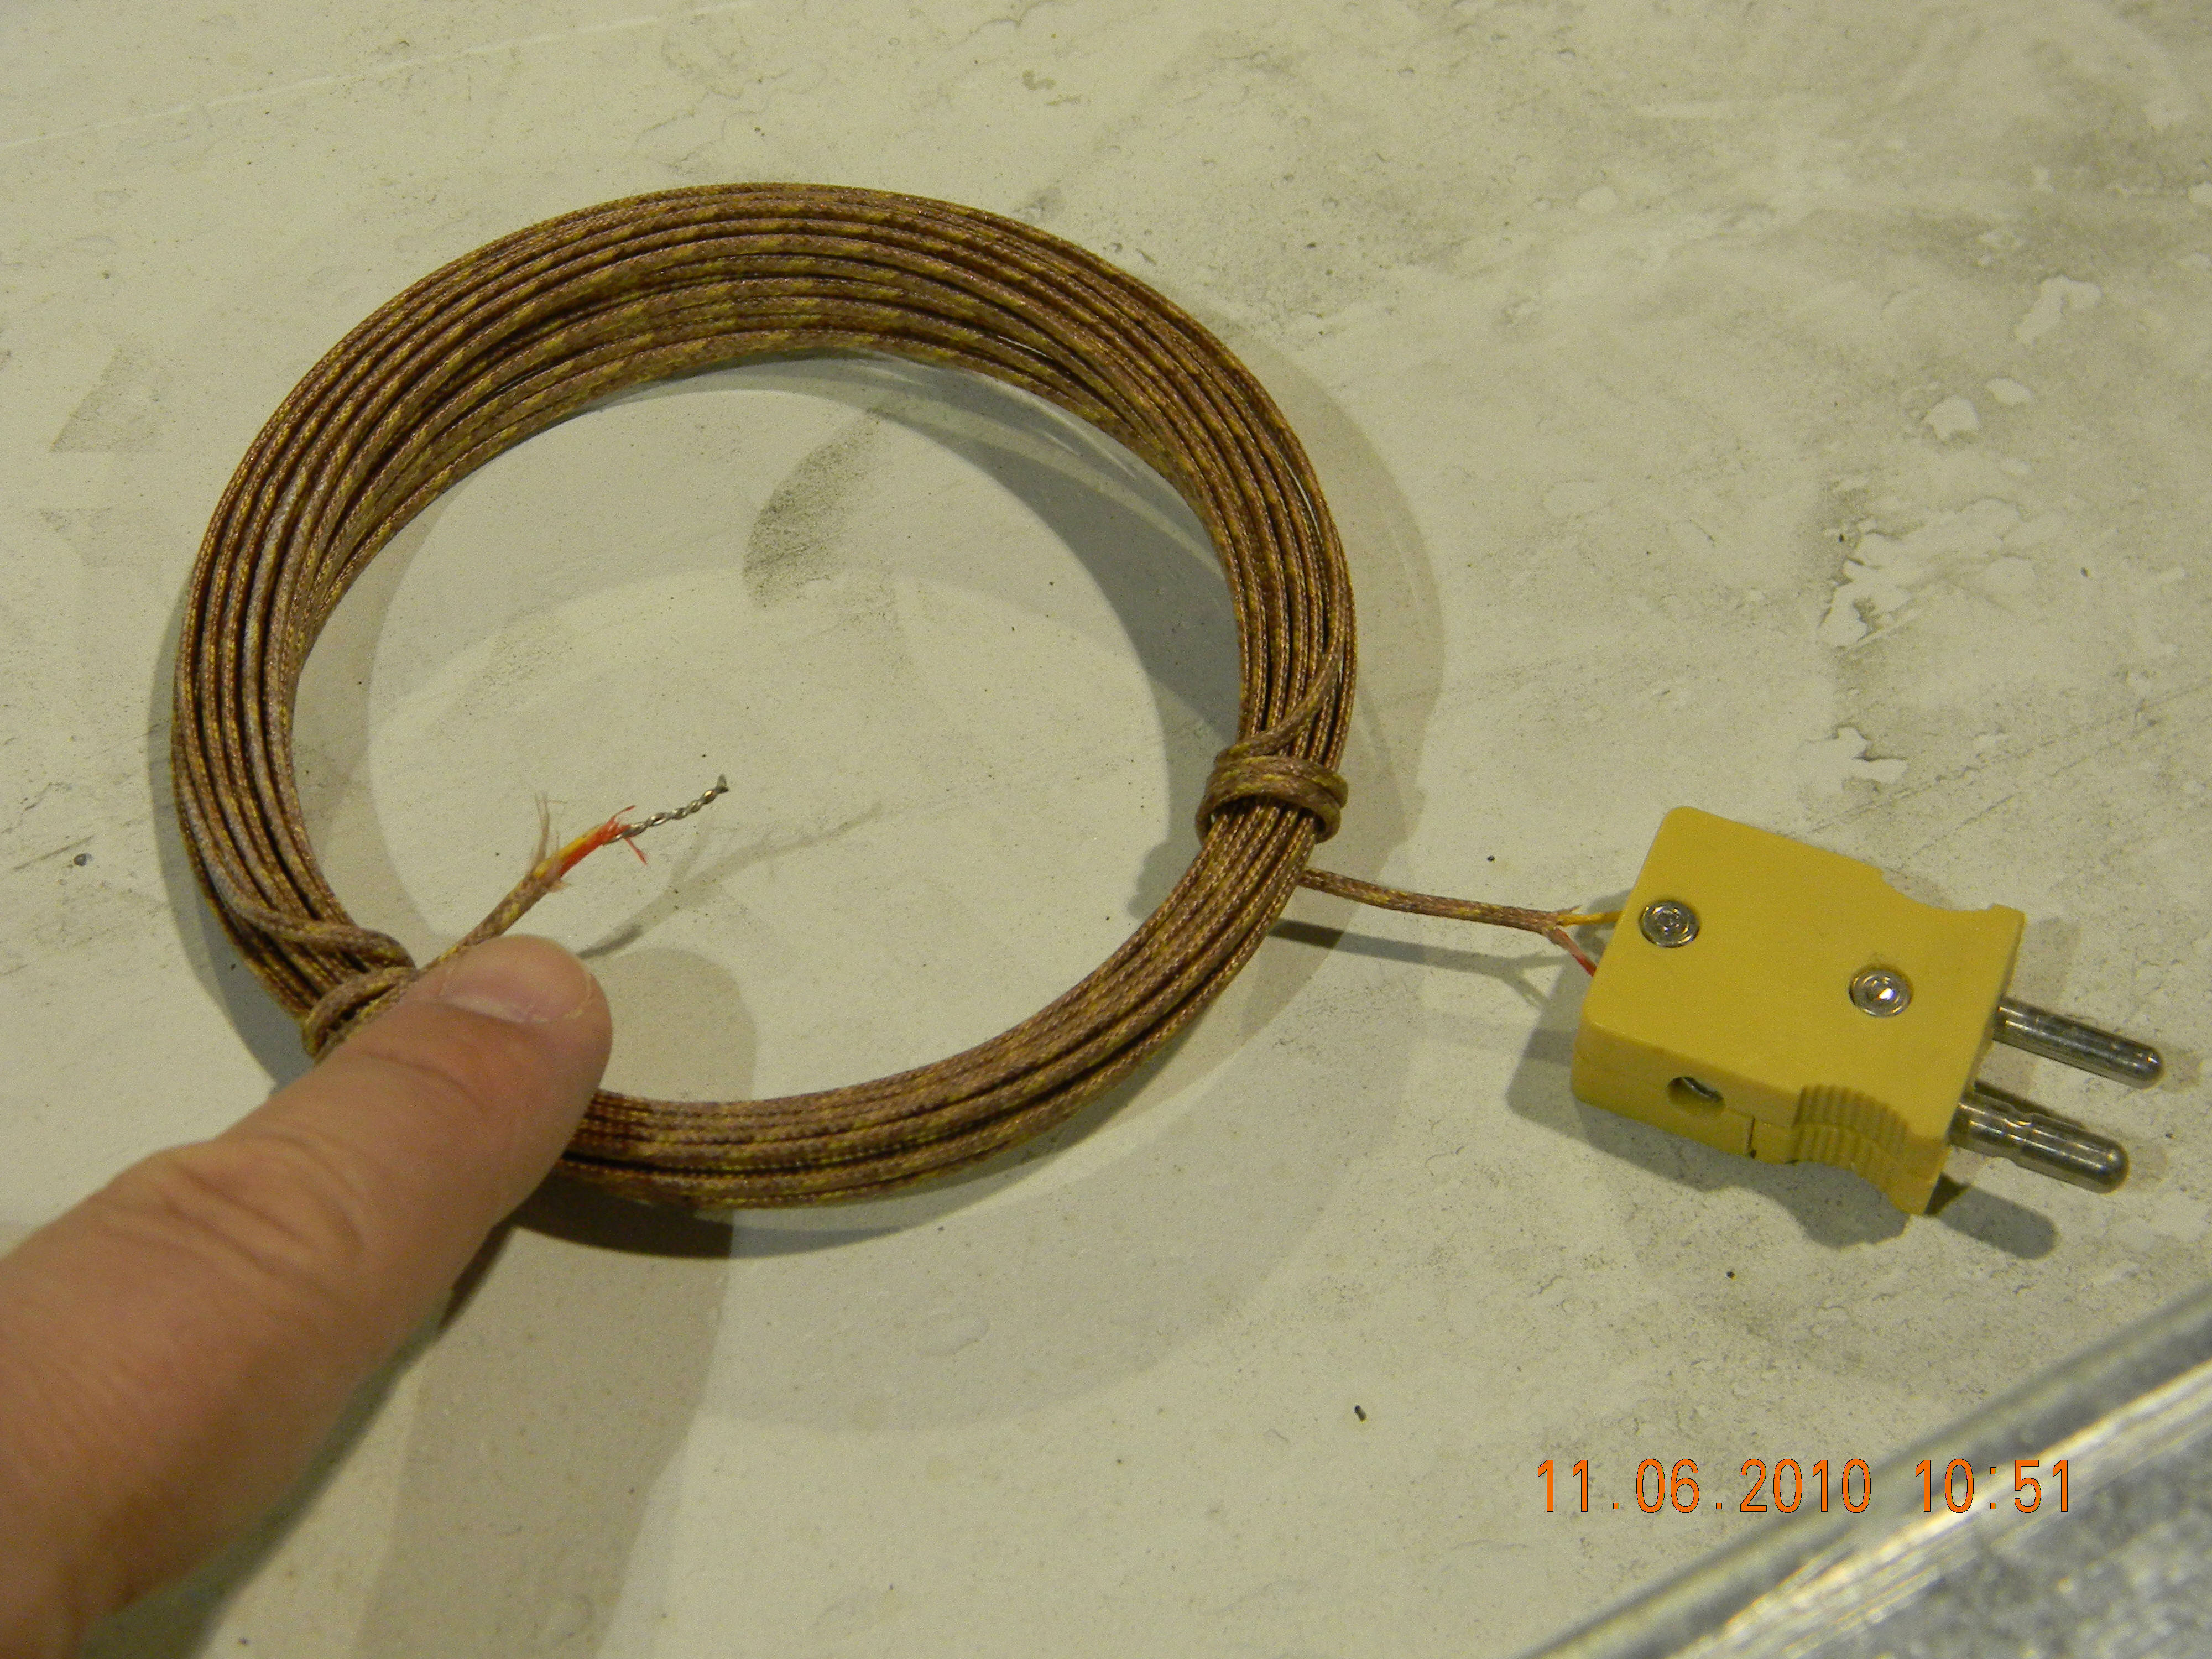 File:Thermocouple wire with plug.jpg - Wikimedia Commons